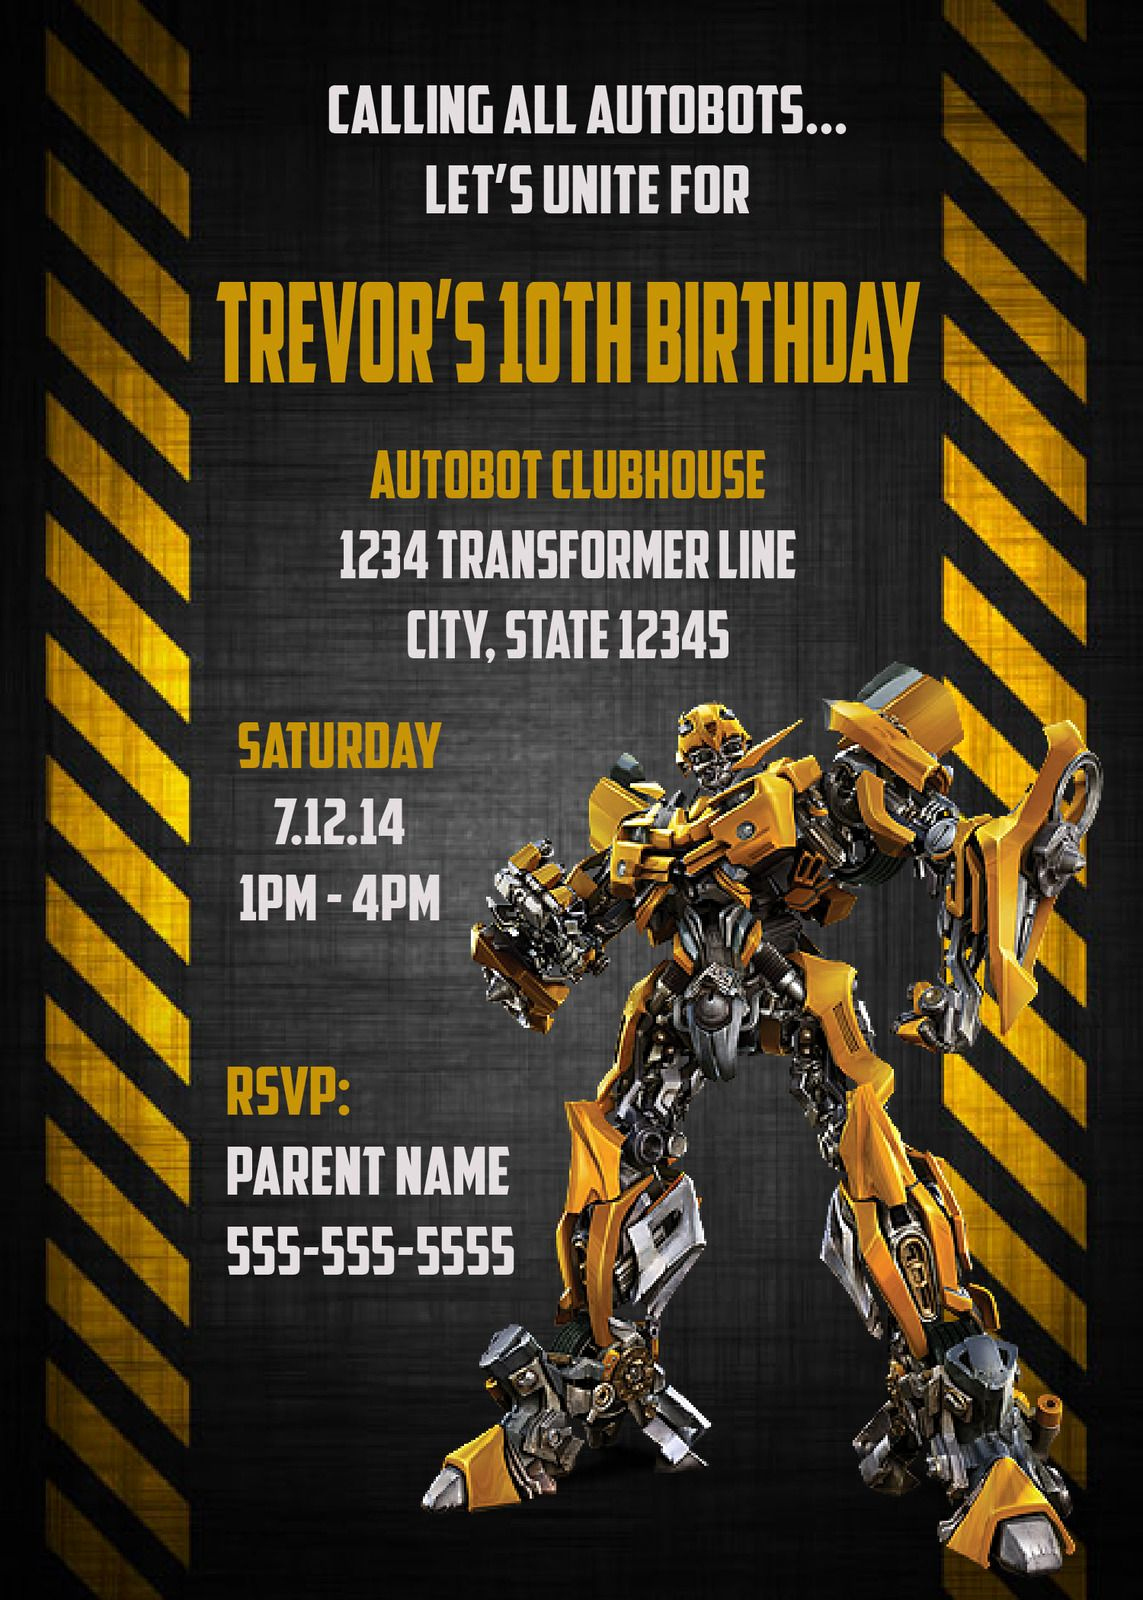 Free Bumble Bee Invitation Template Luxury $10 Transformers Bumble Bee Birthday Invitation